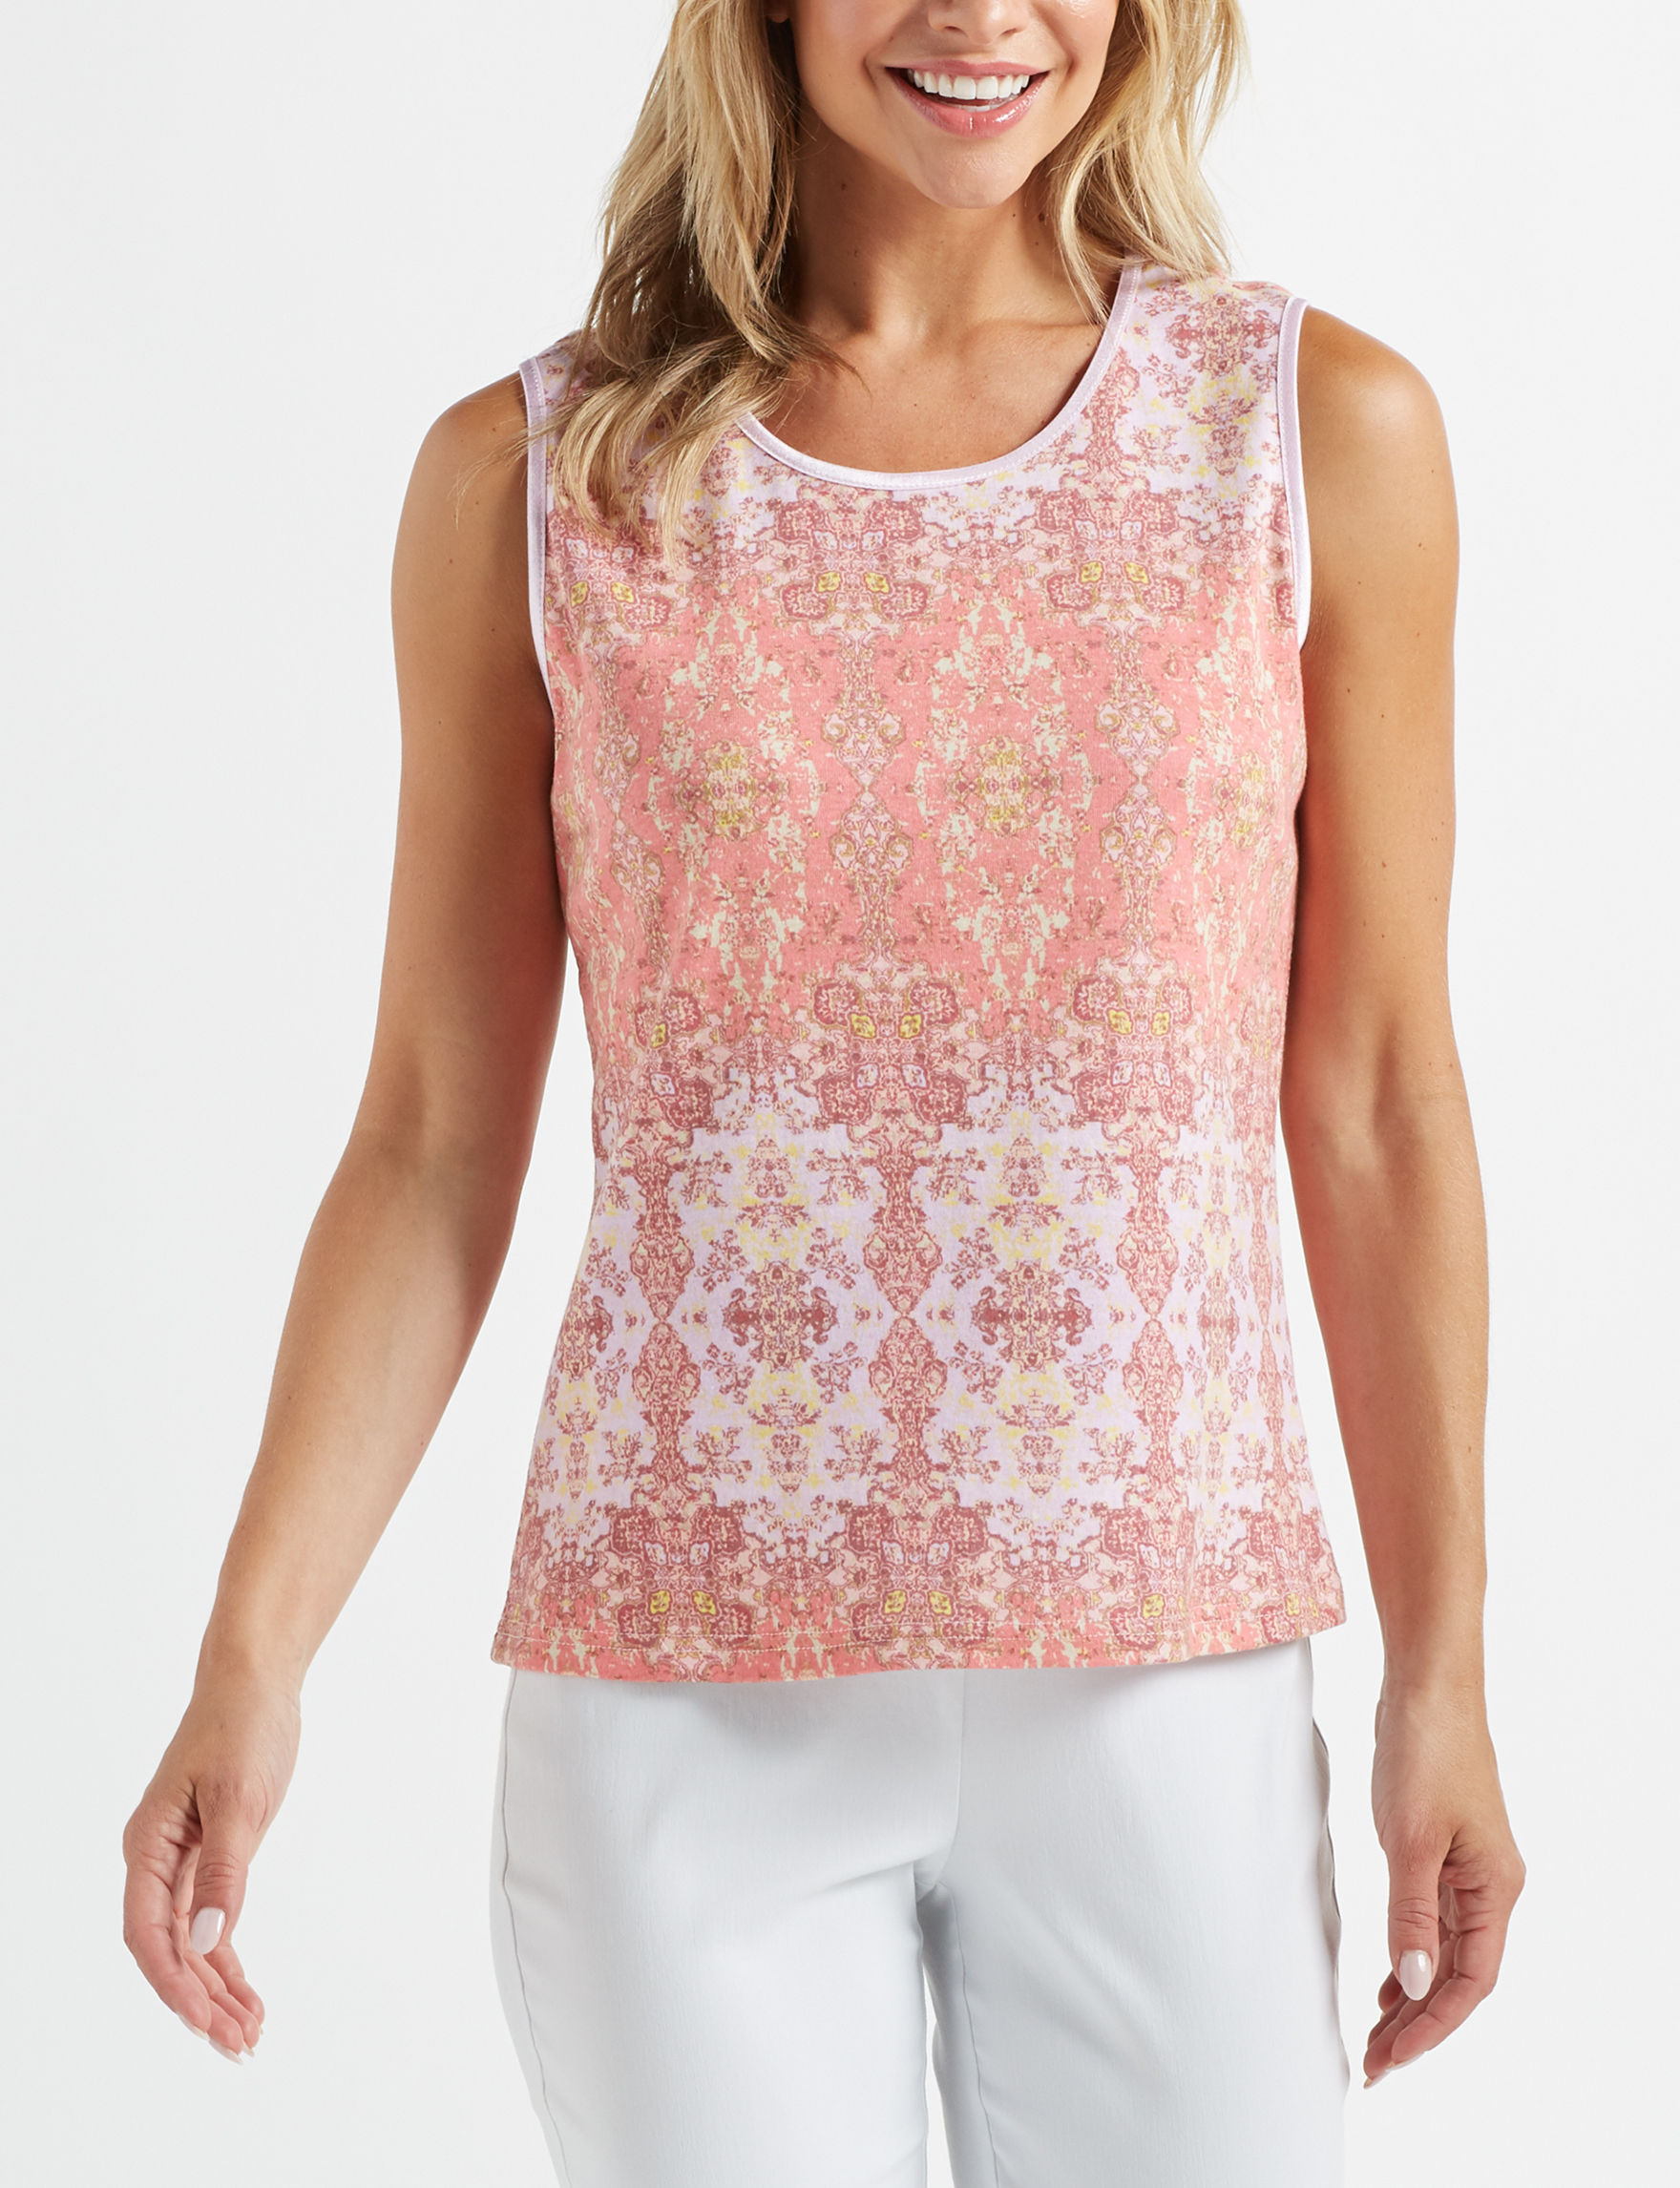 Rebecca Malone Rose Camisoles & Tanks Shirts & Blouses Tees & Tanks